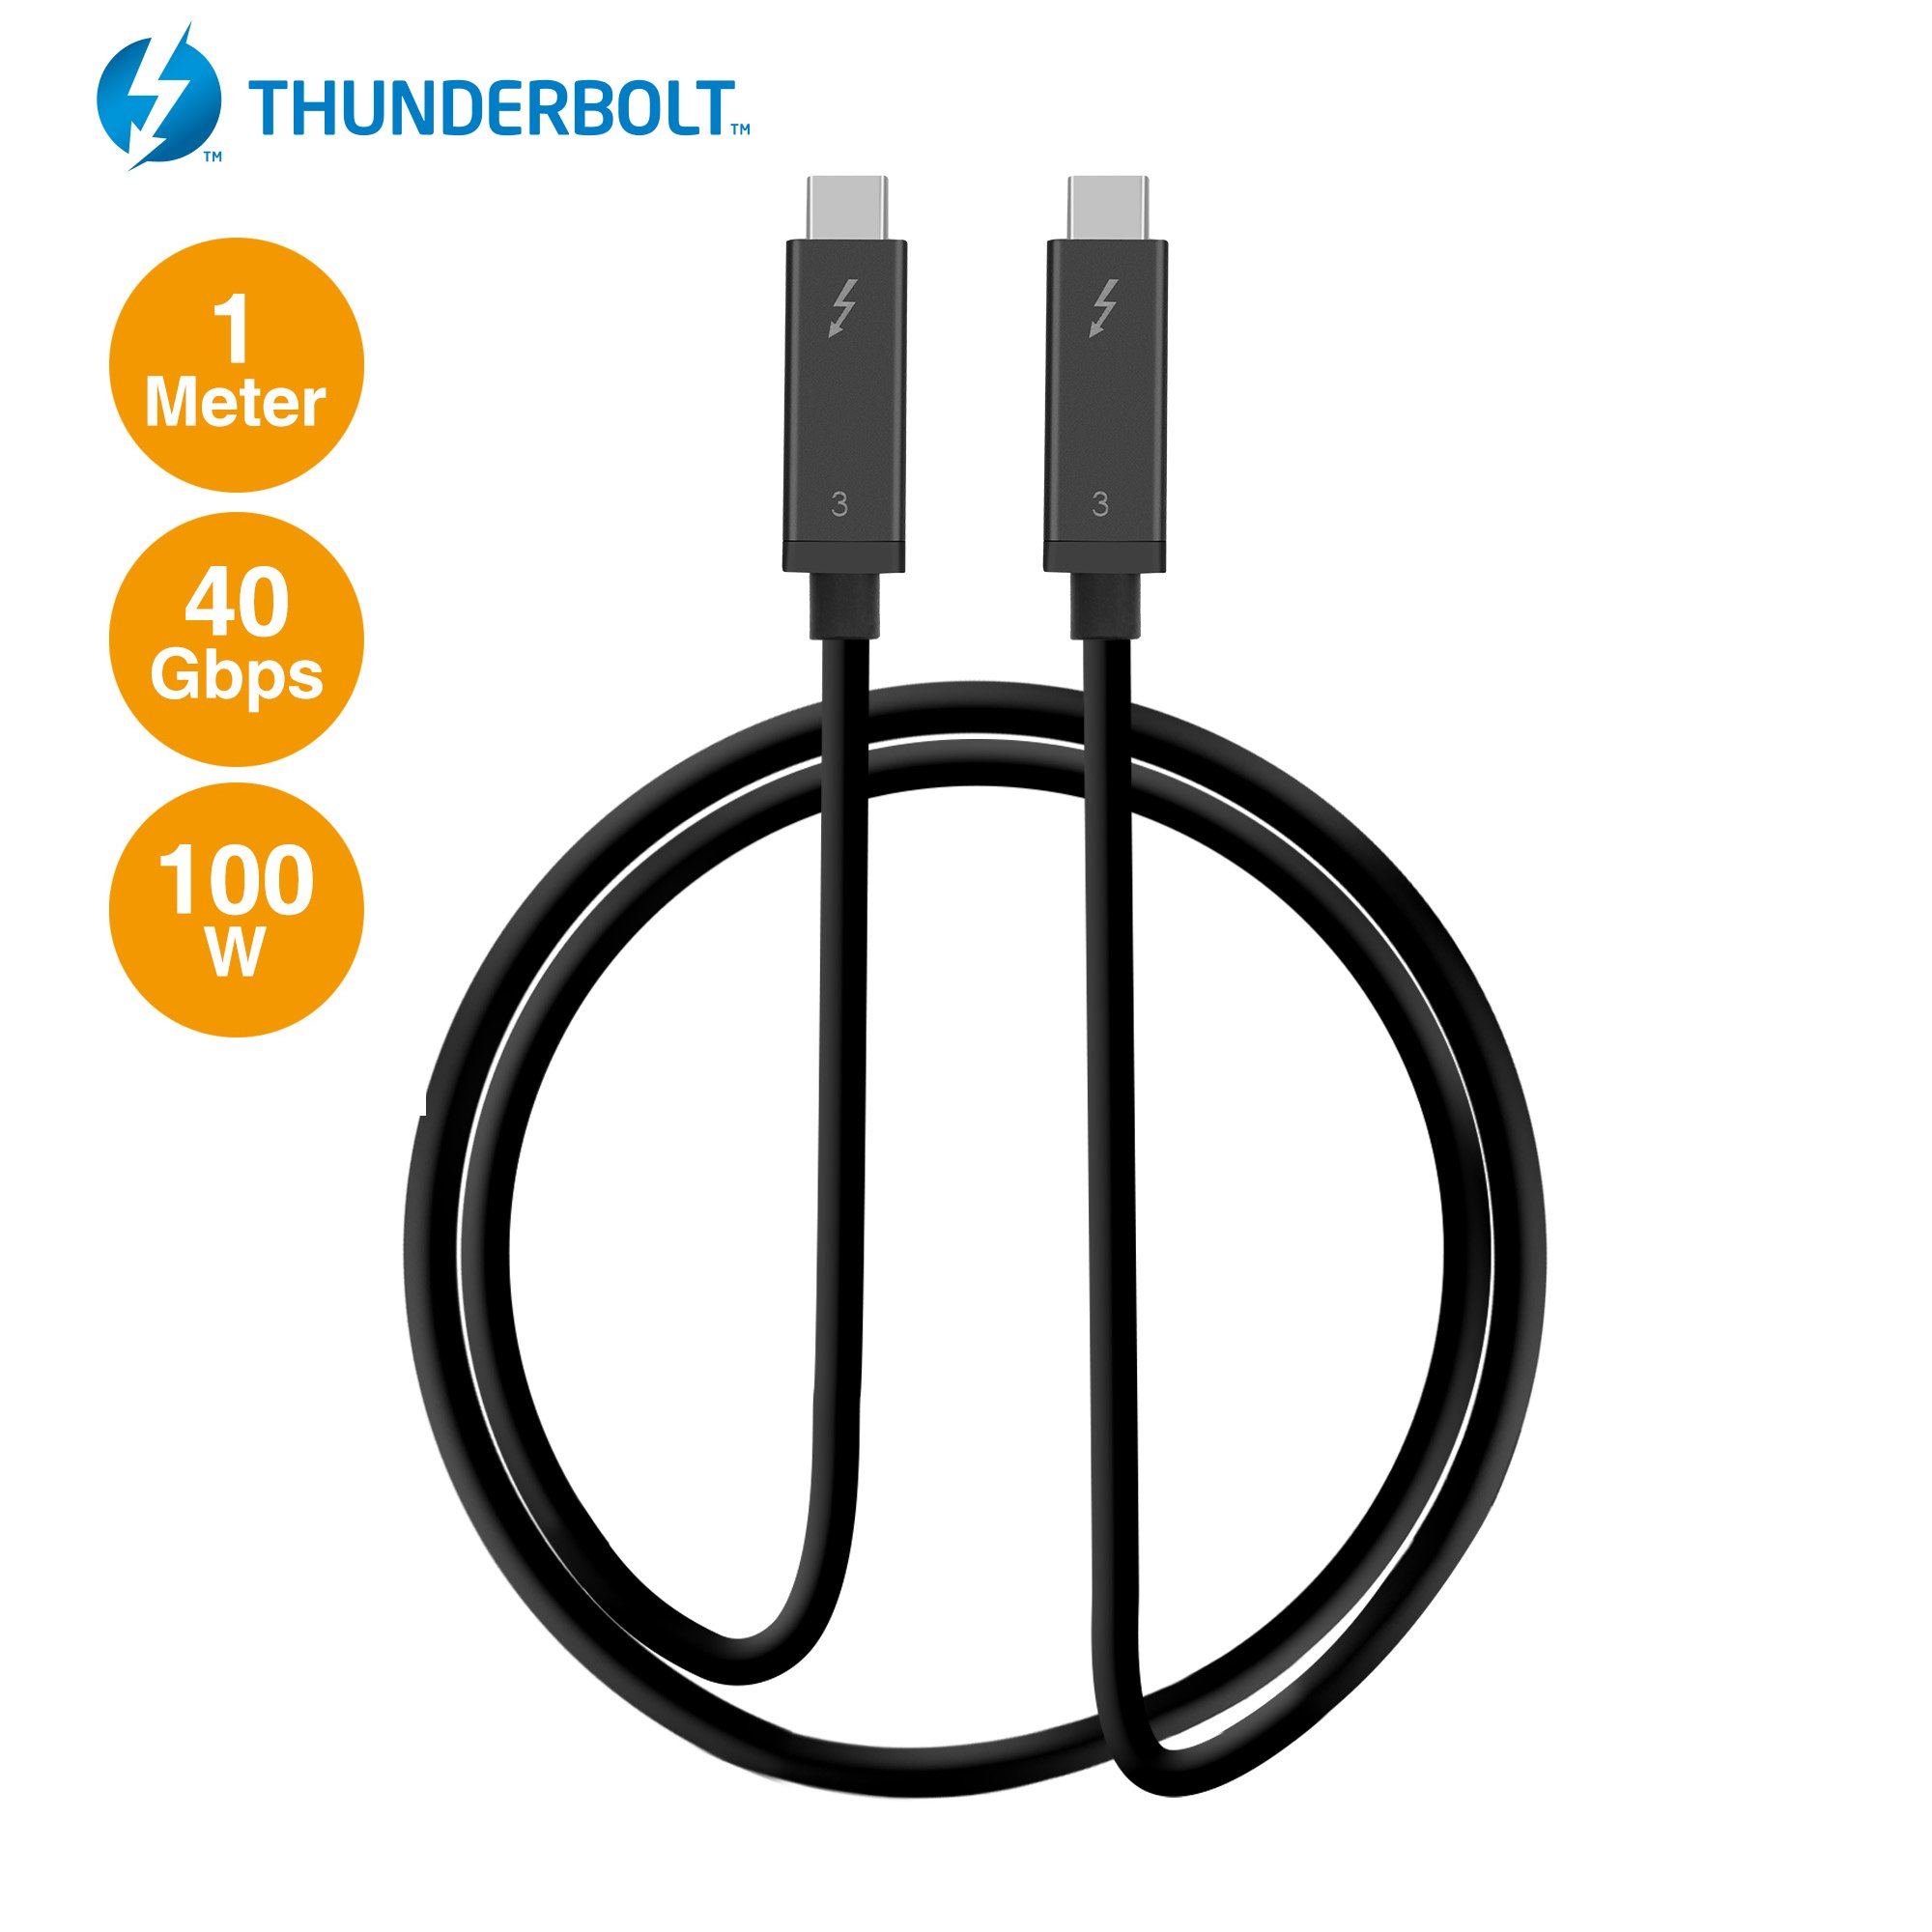 SIIG Thunderbolt 3 Certified, 40Gbps Thunderbolt 3 Active Cable 1M - 100W Charging/5A/20V - Daisy Chain up to 6 Devices - USB Type C with Thunderbolt Logo Compatible - 3.3 Ft by SIIG